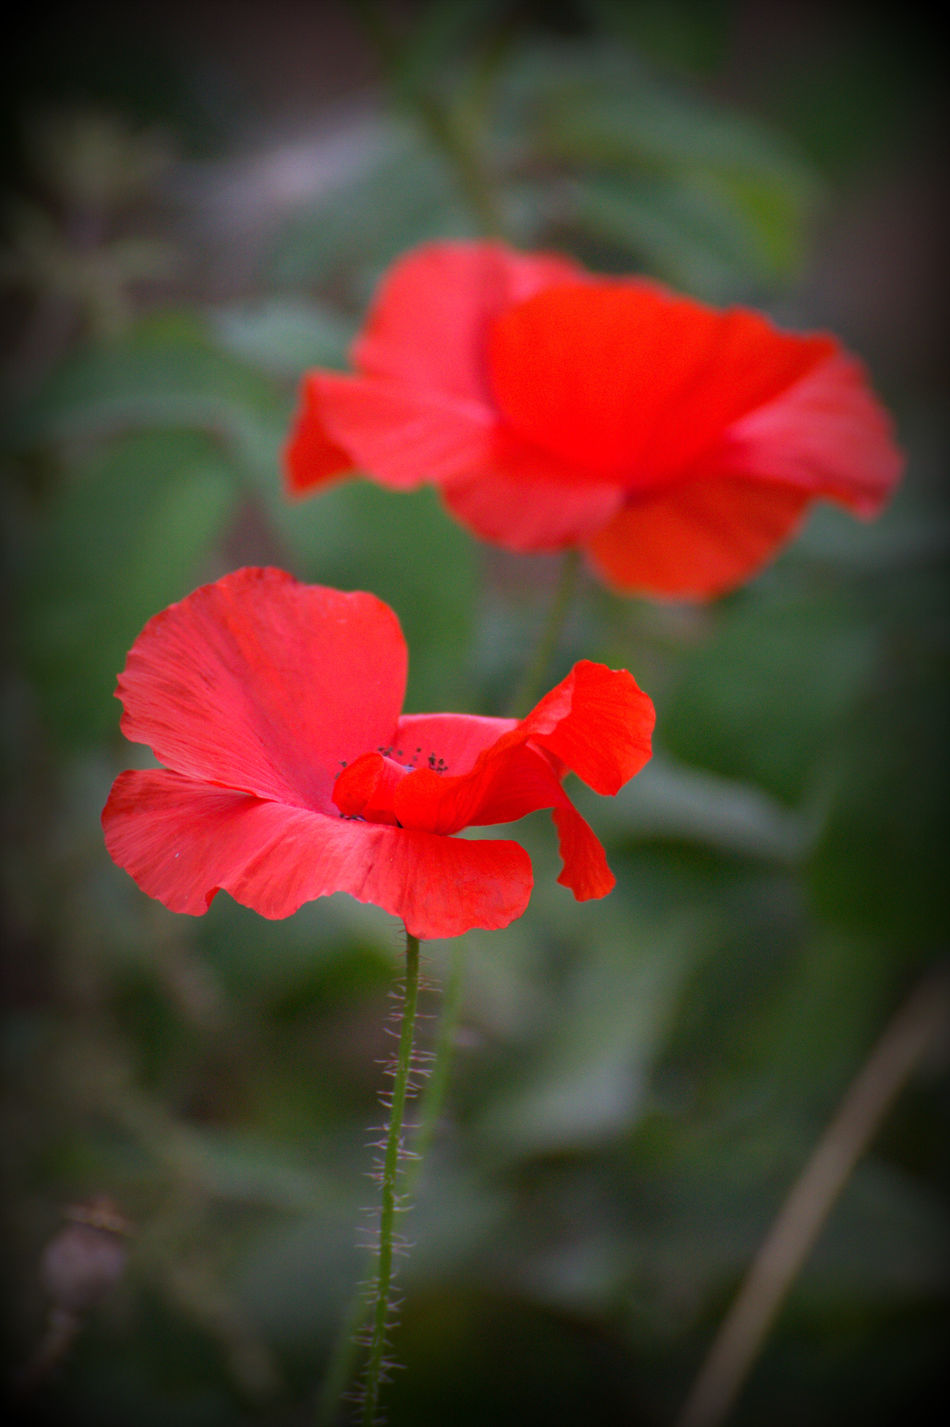 Flower Head Flower Flowers,Plants & Garden Beauty In Nature Nature Photography Nature Red Beautiful Close-up Poppyheads Poppy Flowers Poppy Red Flowers Green Color Green